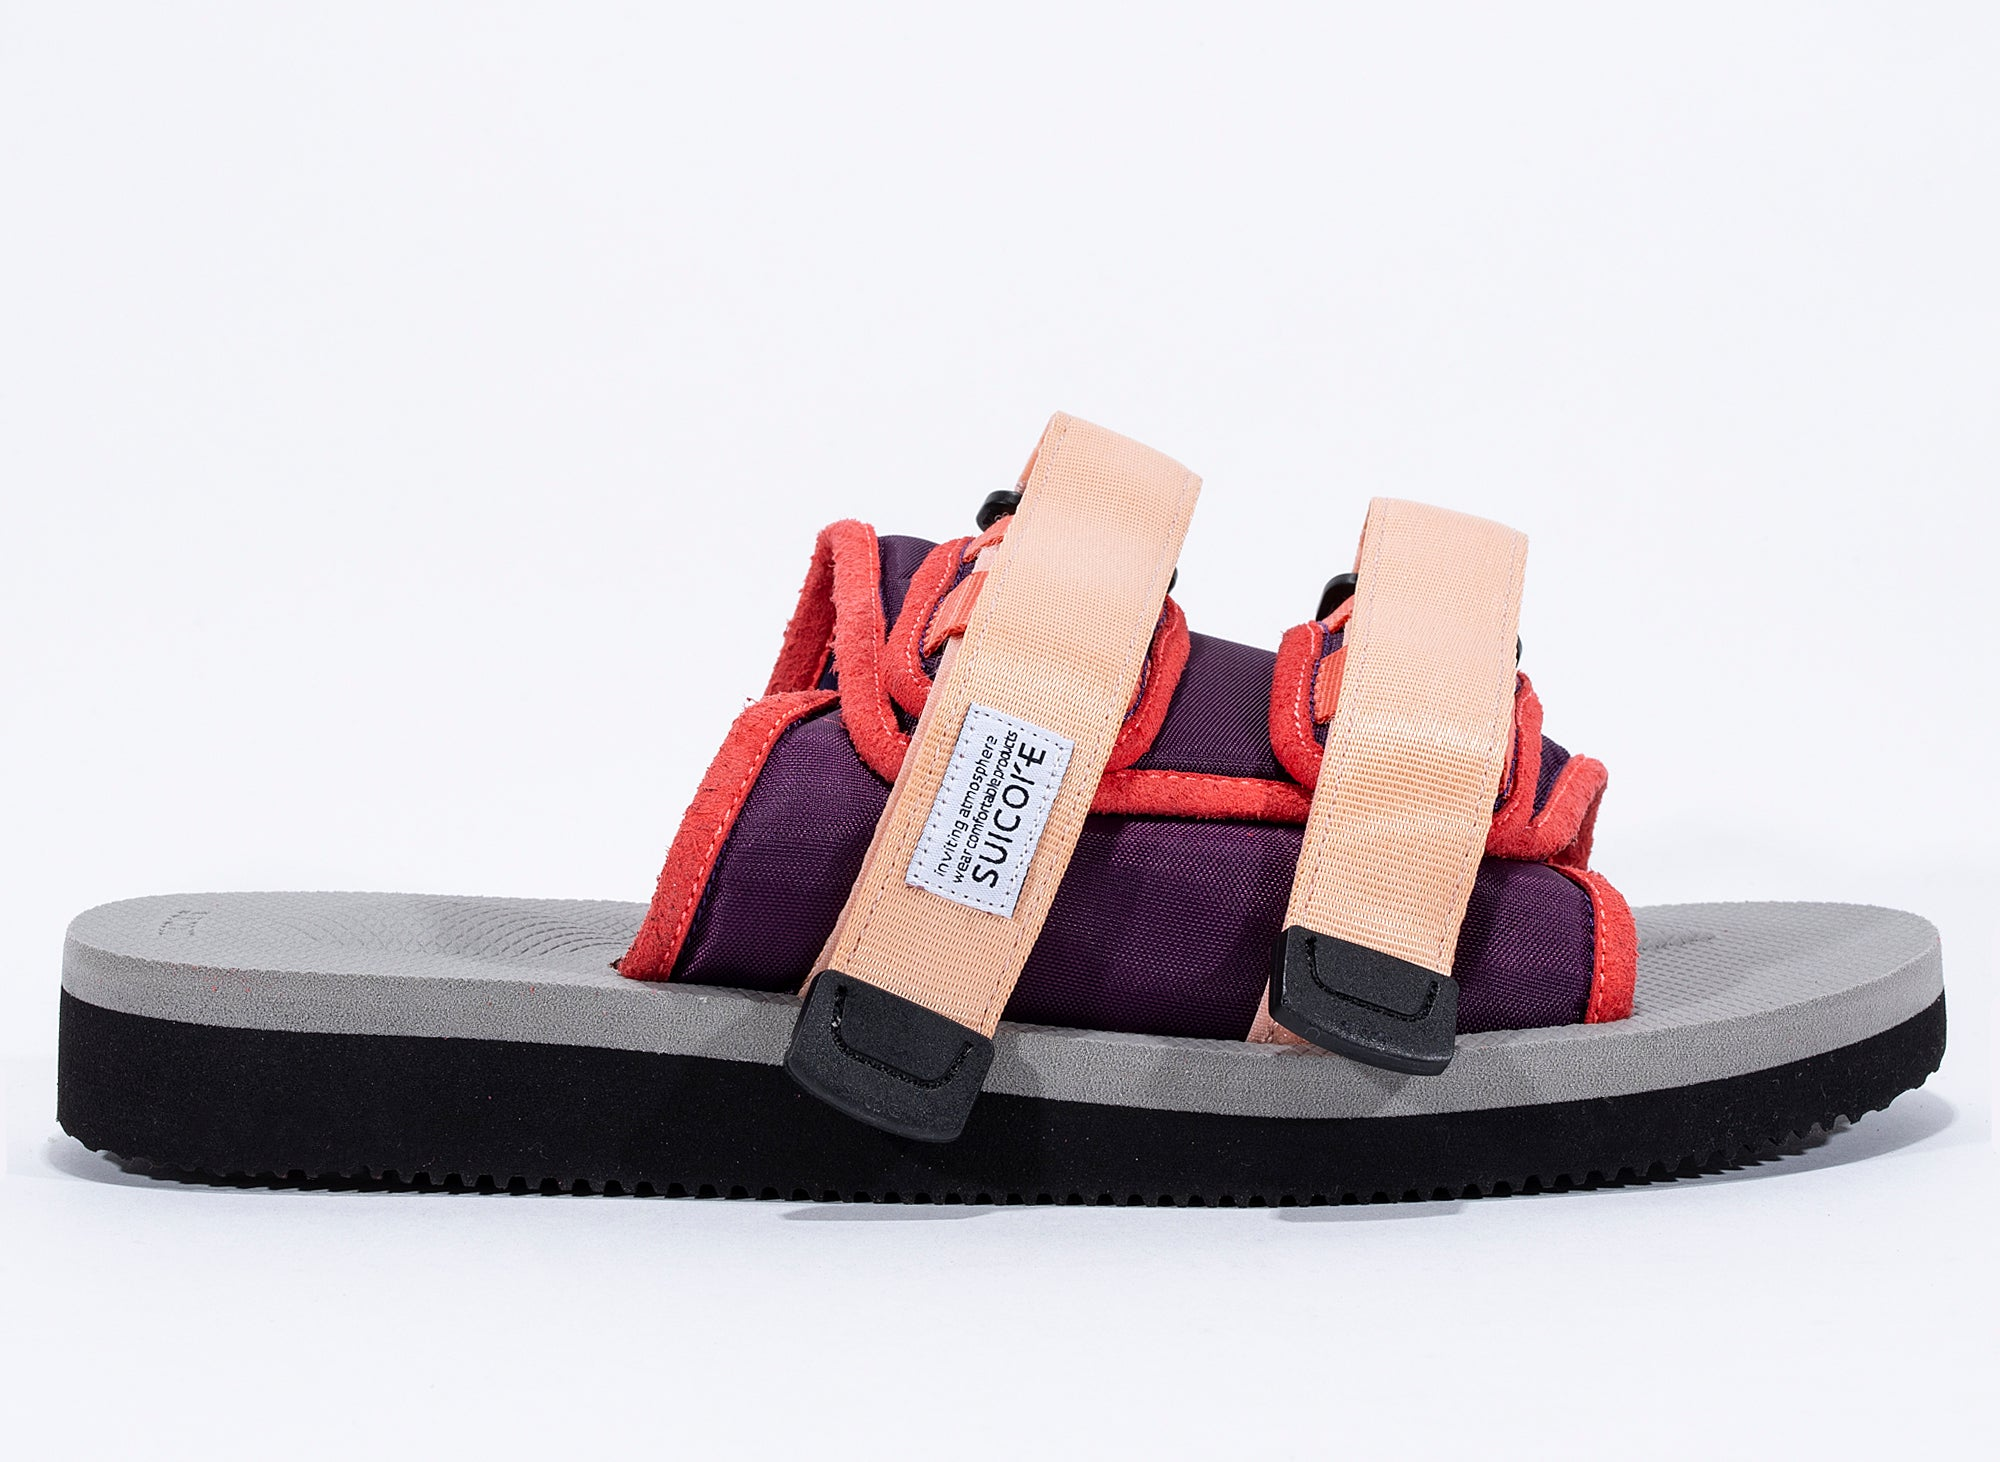 Suicoke Moto-Cab Sandals in Pink